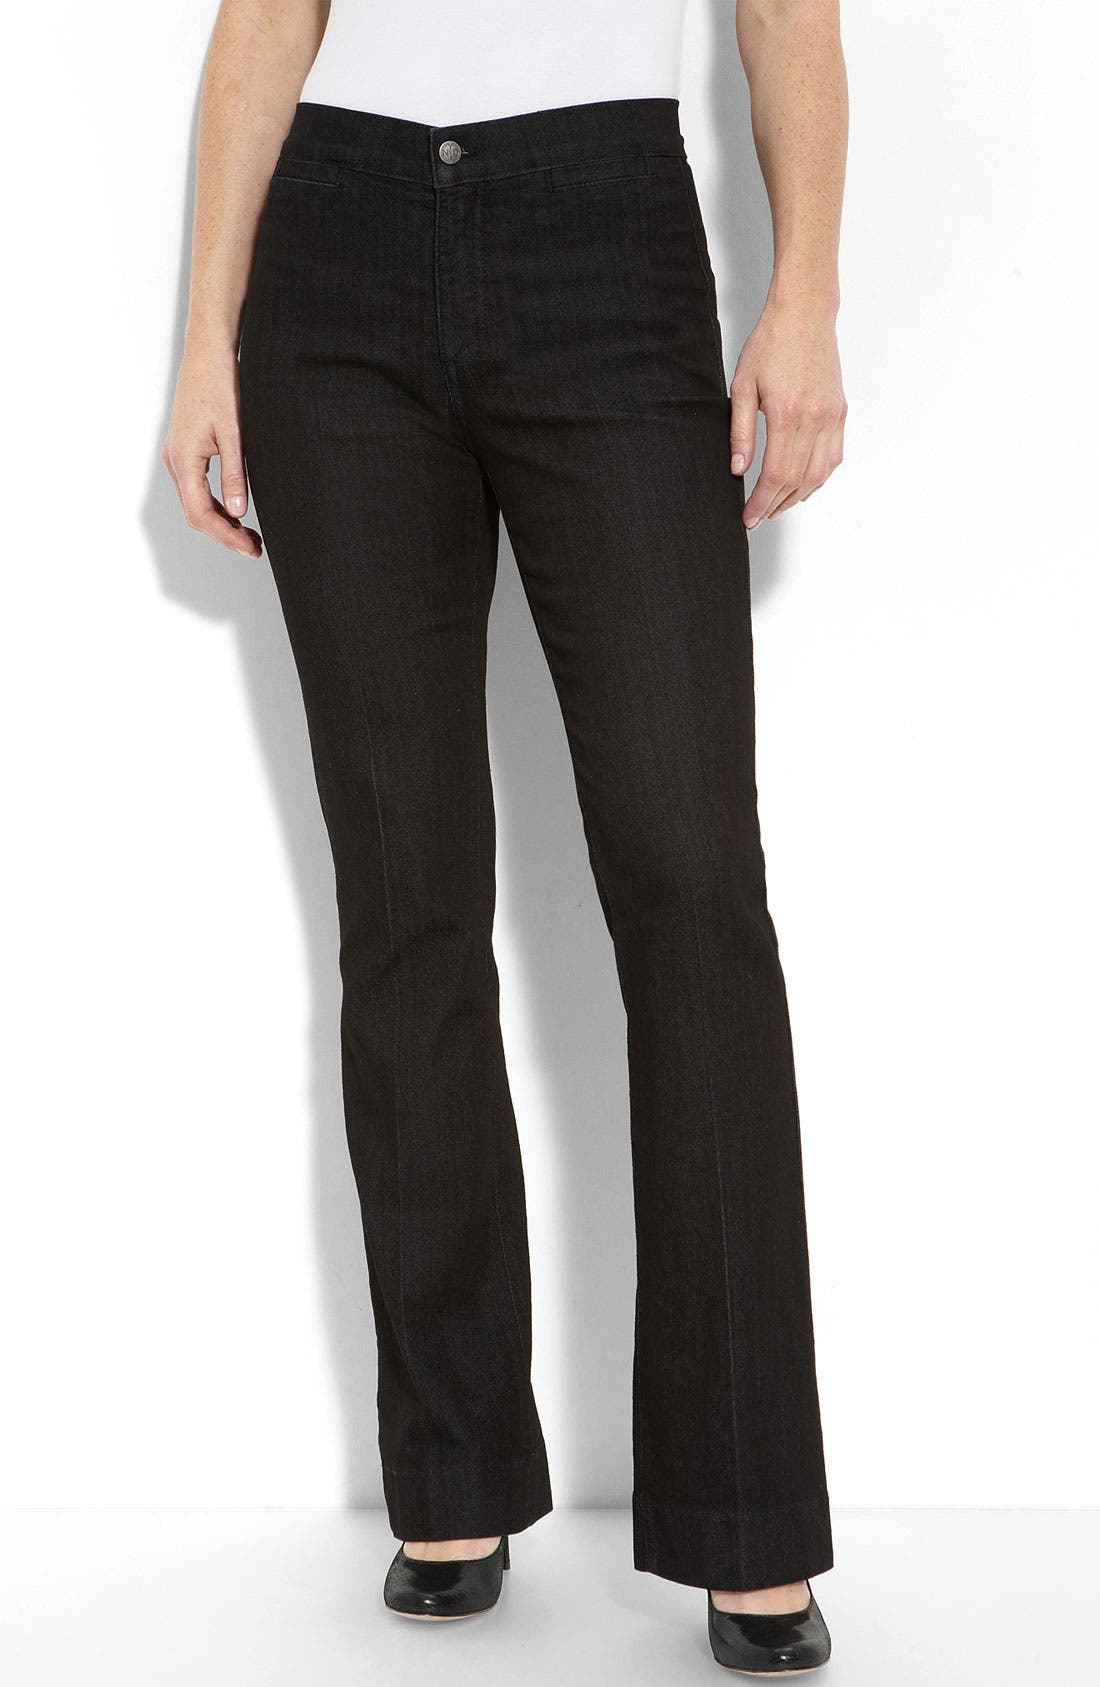 Alternate Image 1 Selected - NYDJ 'Michelle' Trouser Jeans (Petite)